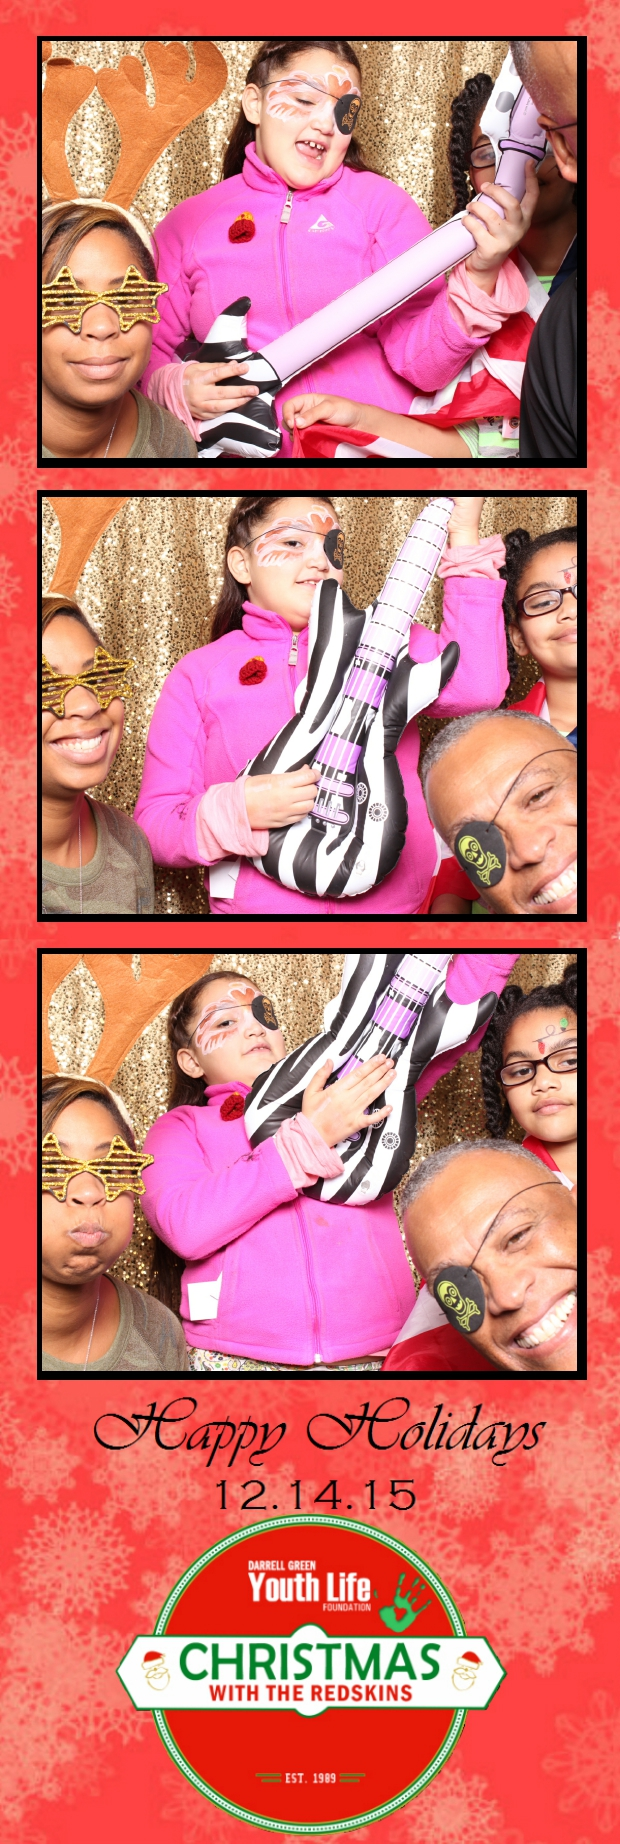 Guest House Events Photo Booth DGYLF Strips (56).jpg